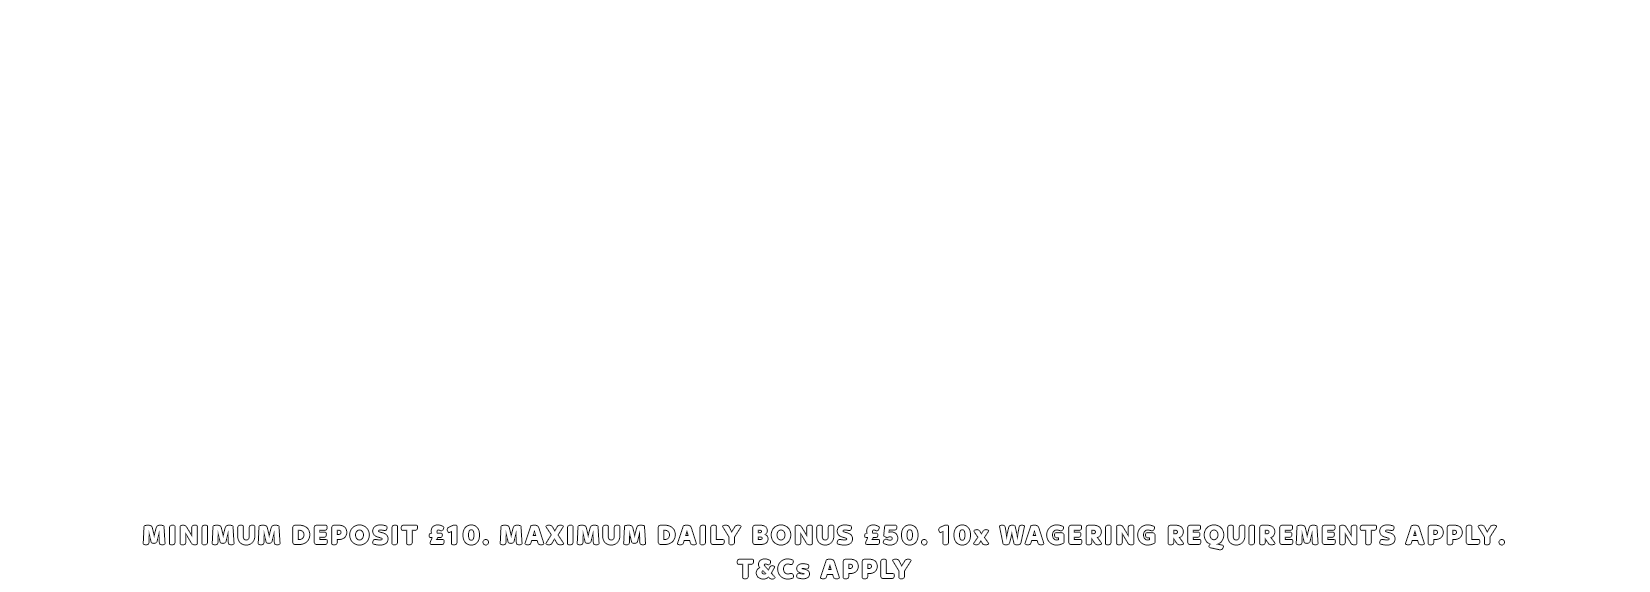 25% Daily Reloads